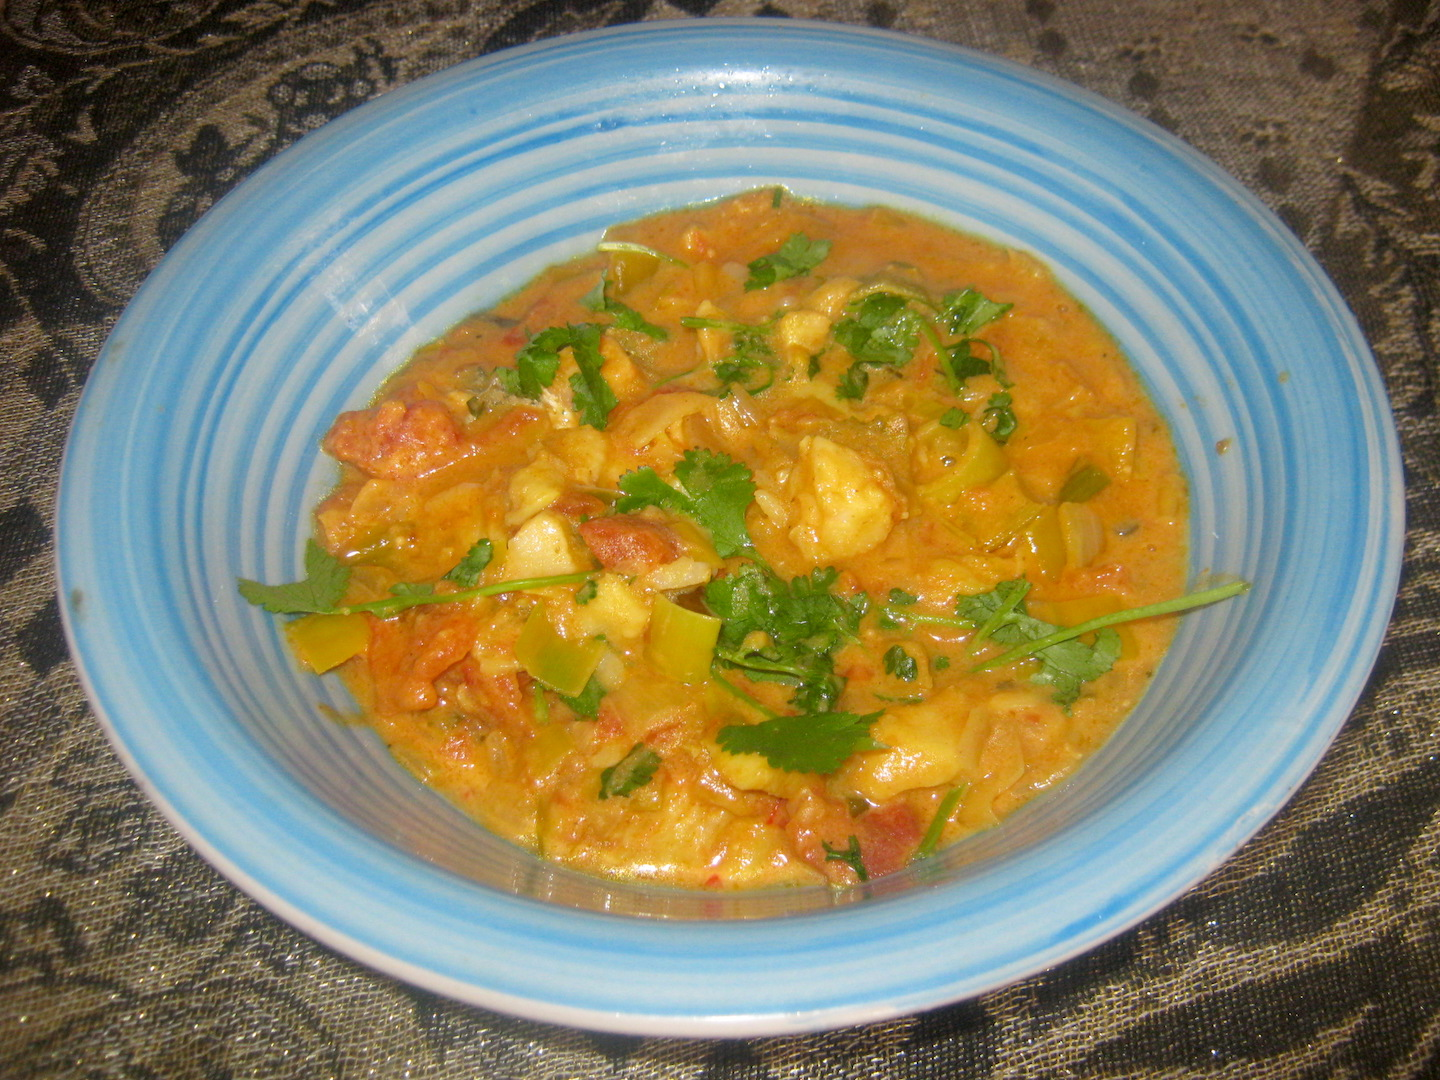 Kerala Fish Curry in a blue bowl